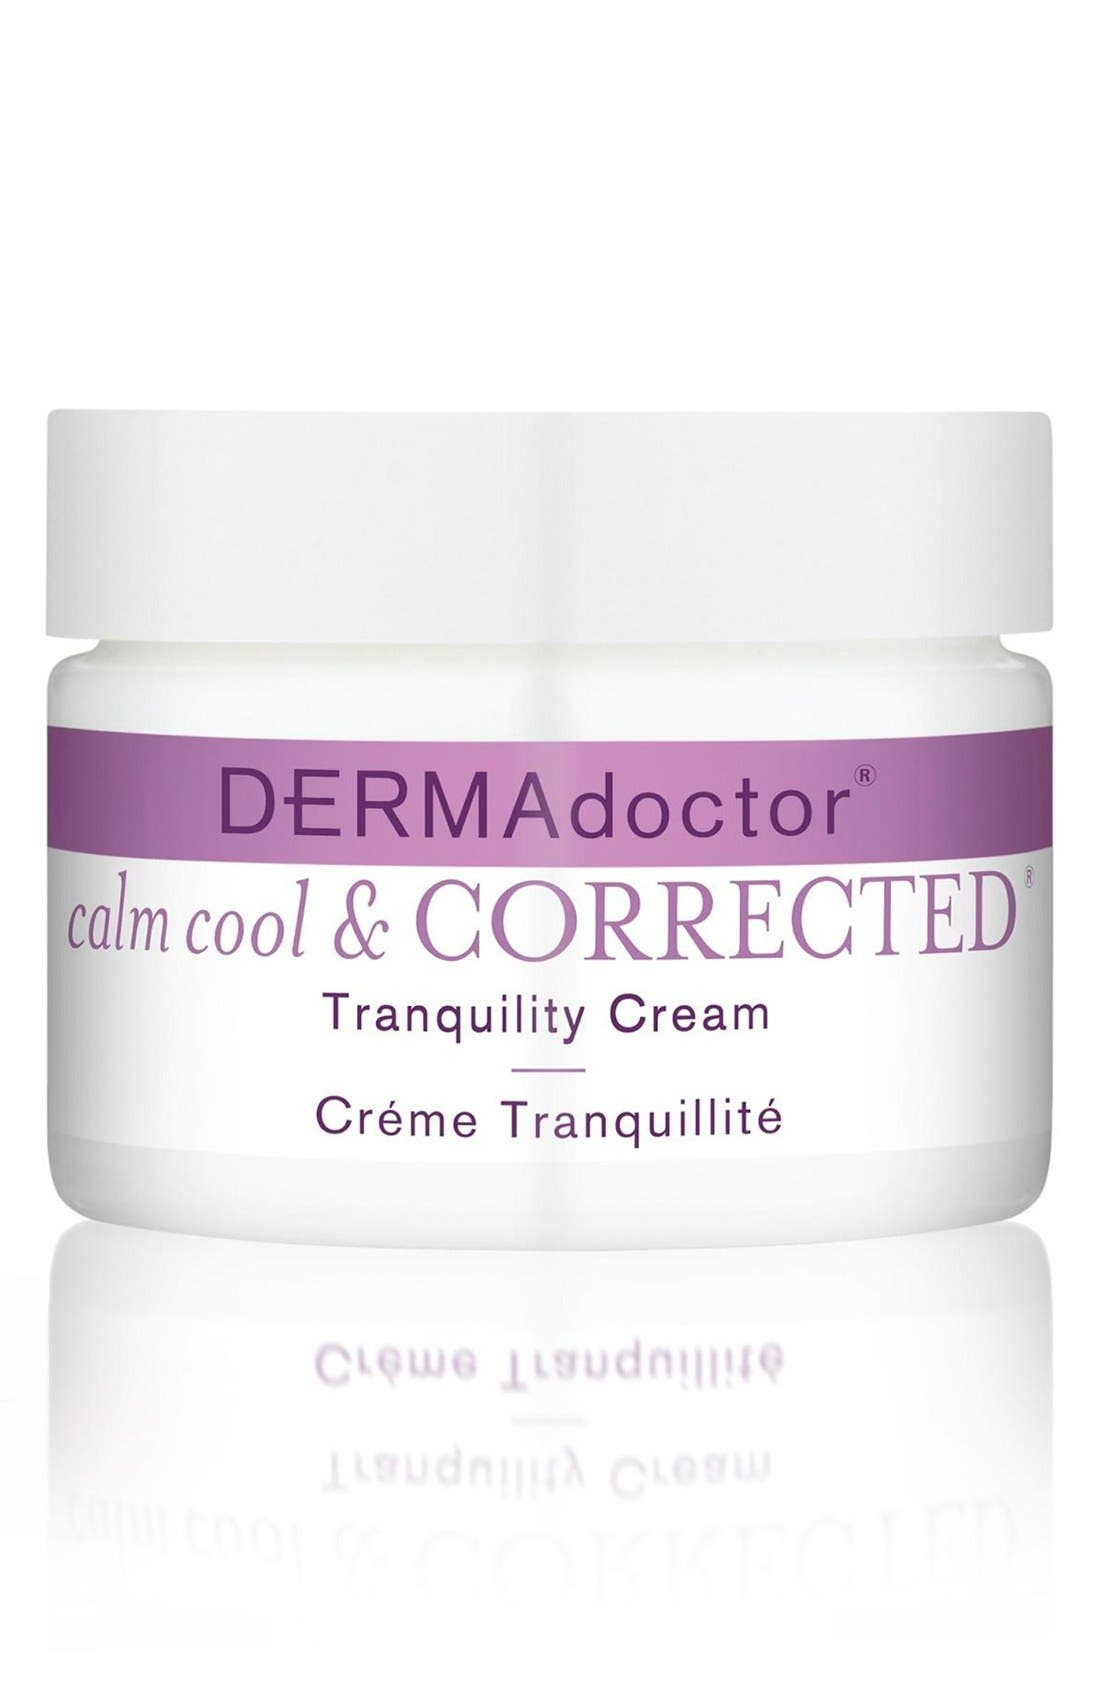 'calm cool & CORRECTED<sup>®</sup>' Anti-Redness Tranquility Cream,                         Main,                         color, NO COLOR